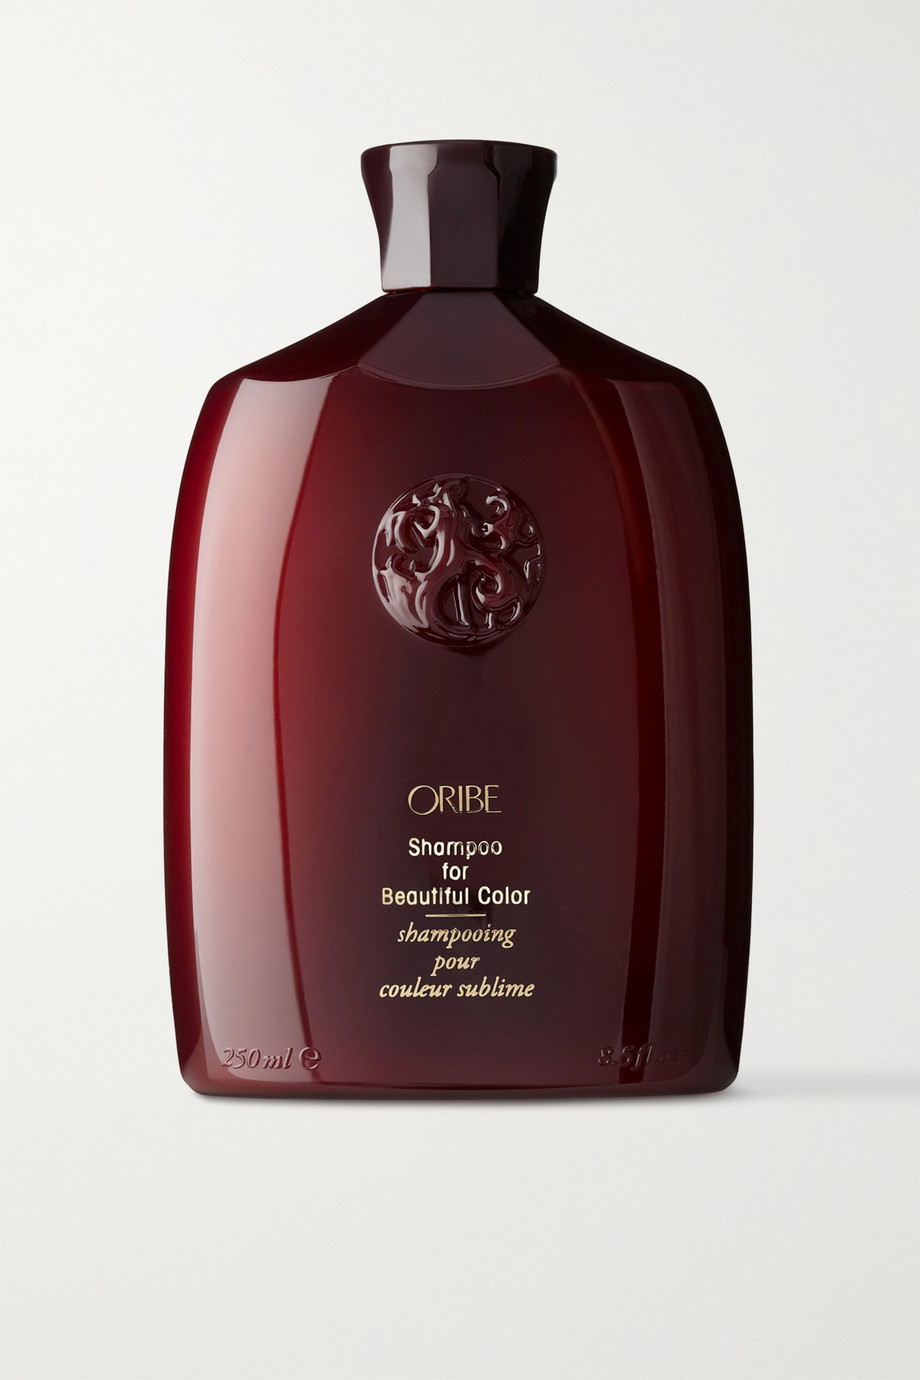 ORIBE Shampoo for Beautiful Color, 250ml